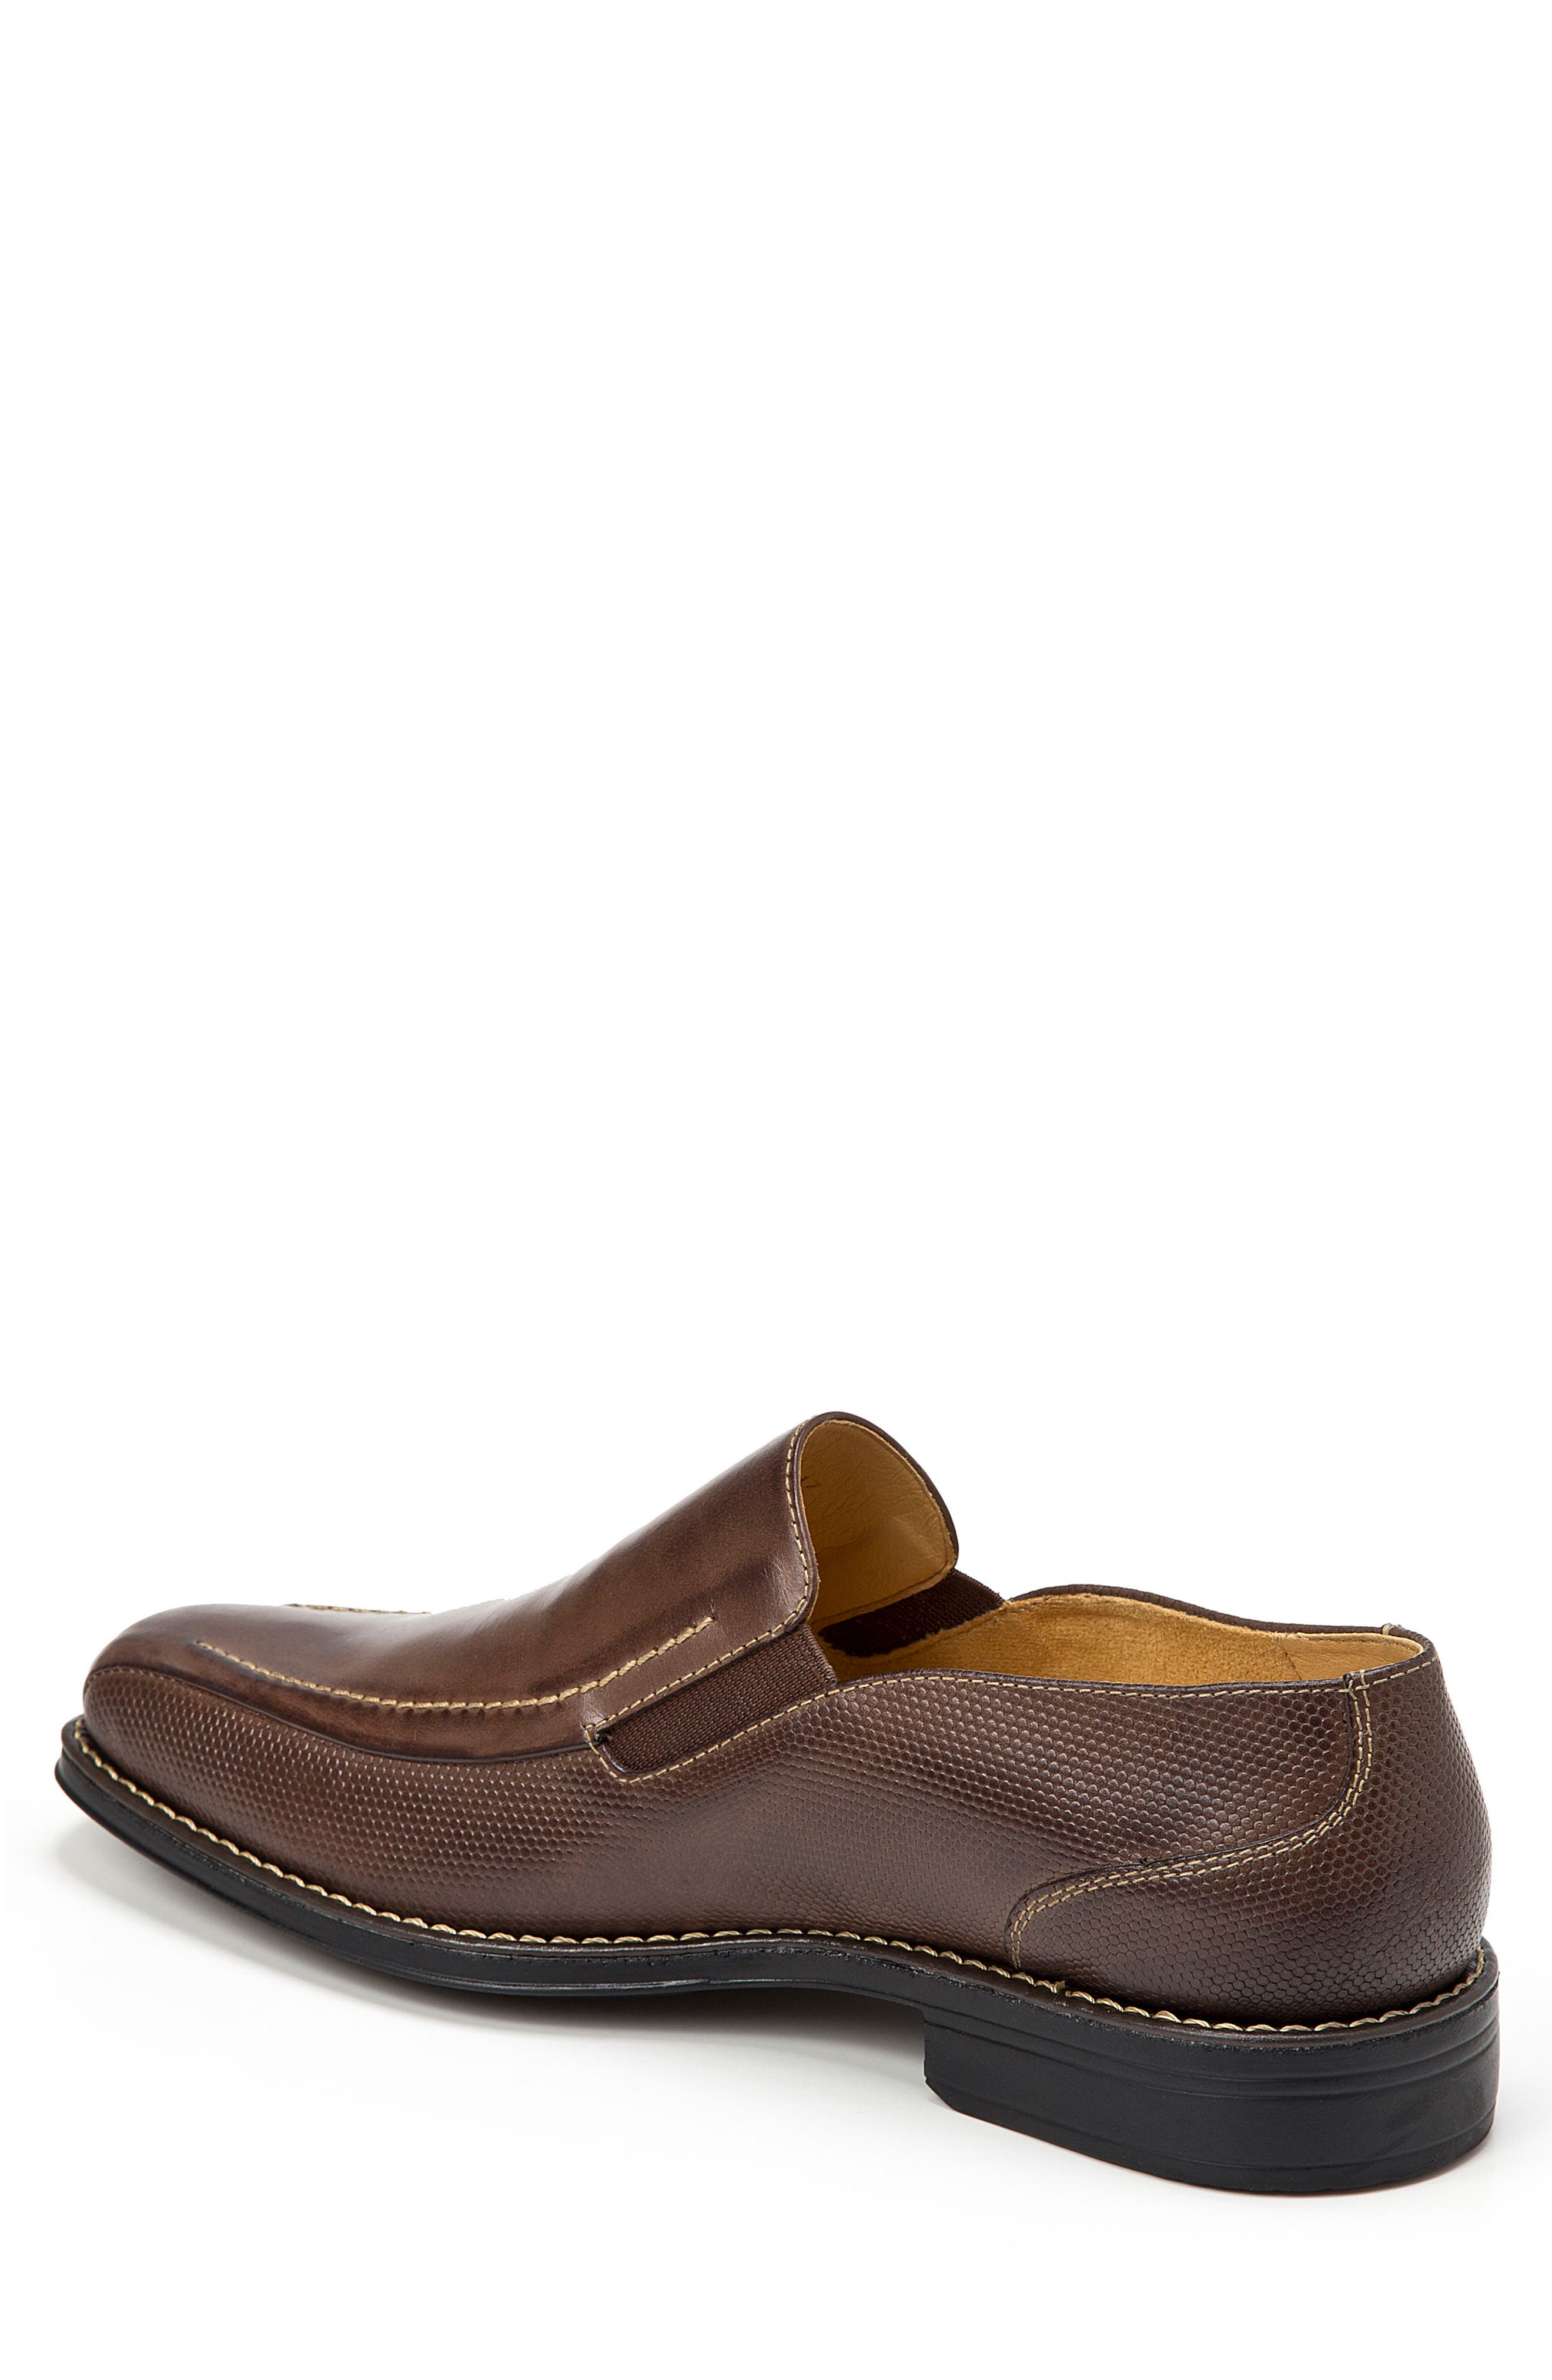 Alternate Image 2  - Sandro Moscoloni Enzo Venetian Loafer (Men)